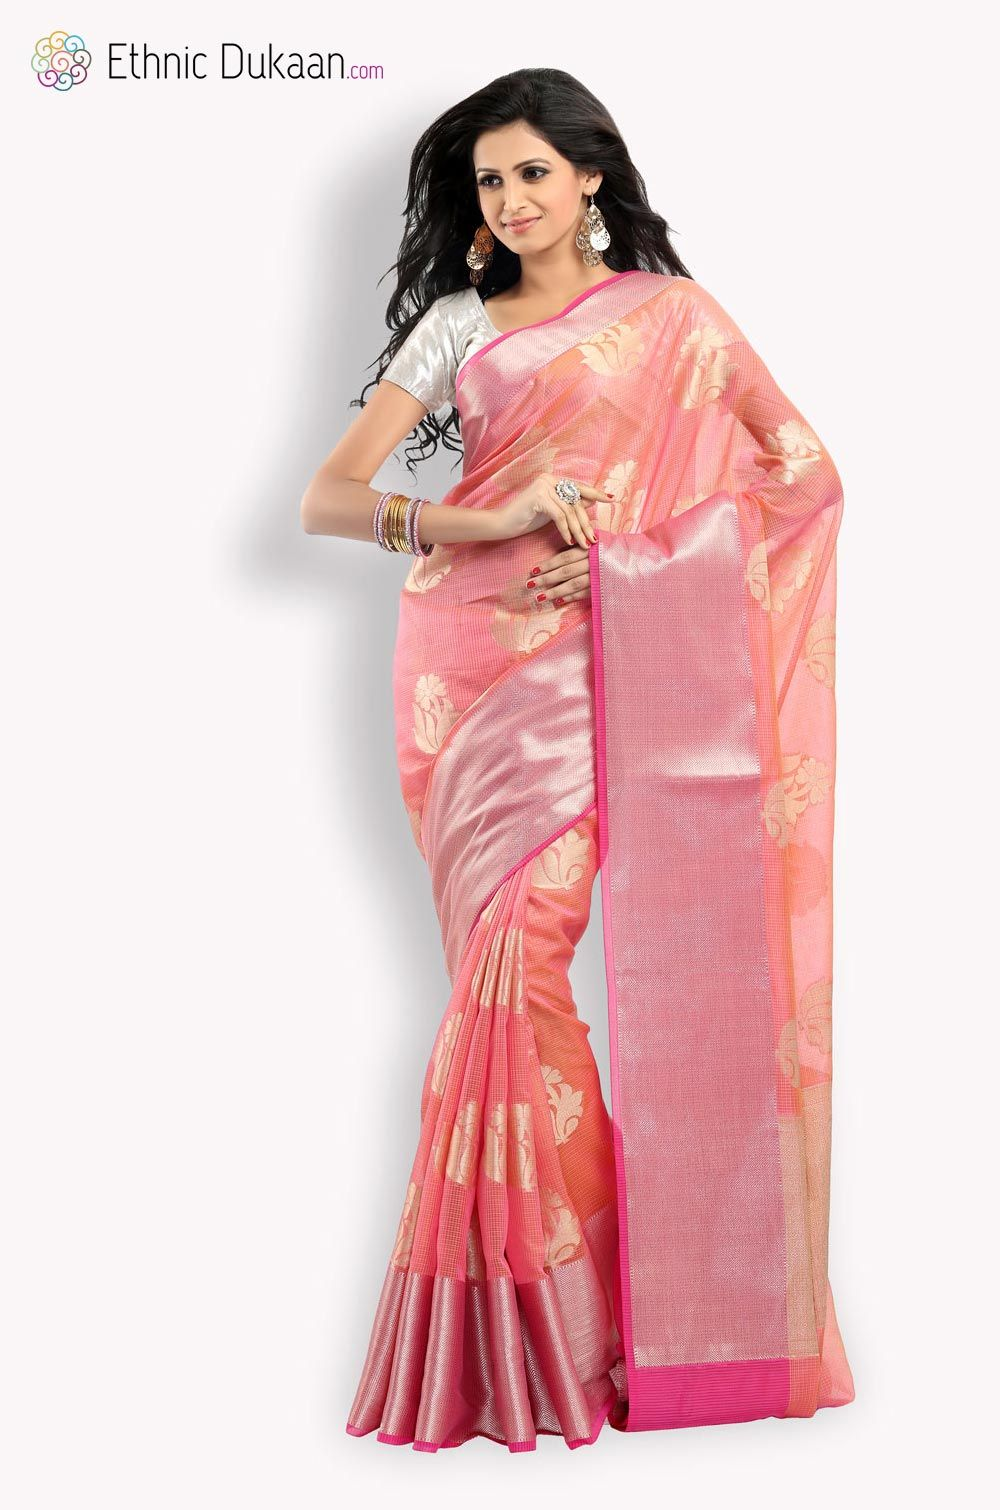 46745e061 Chanderi Kota Saree With Zari Self Weave Kota Sarees